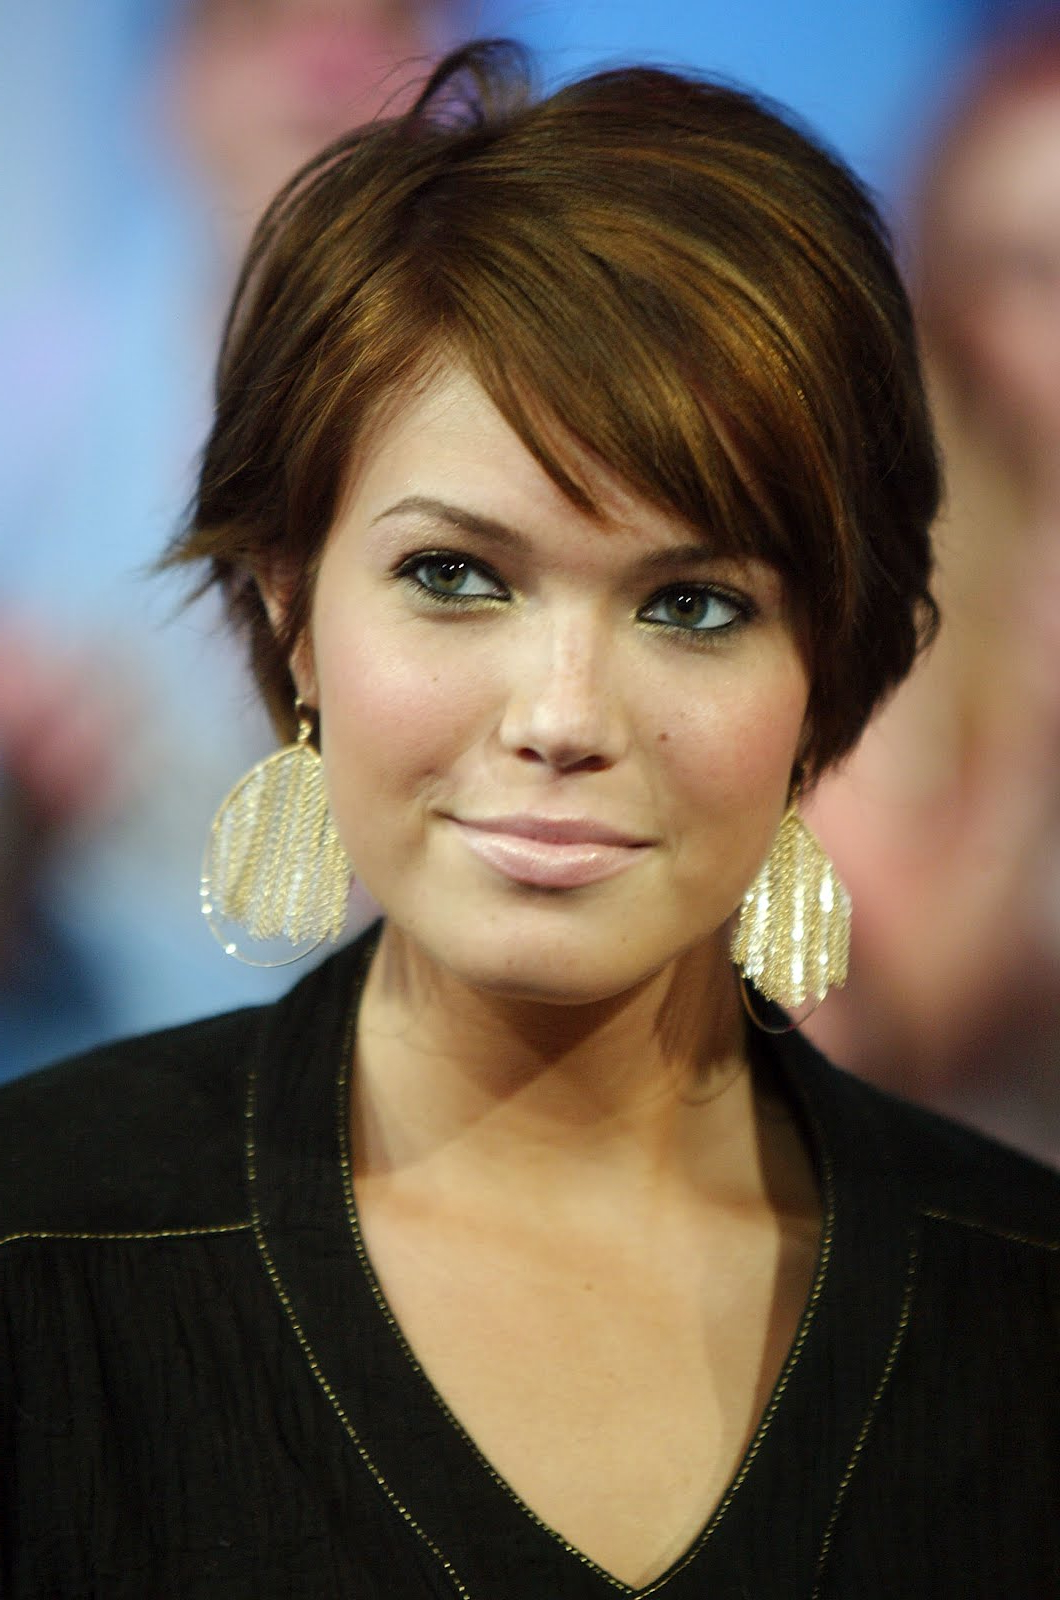 30 Gorgeous Short Haircuts For Round Faces In Edgy Short Hairstyles For Round Faces (View 14 of 25)